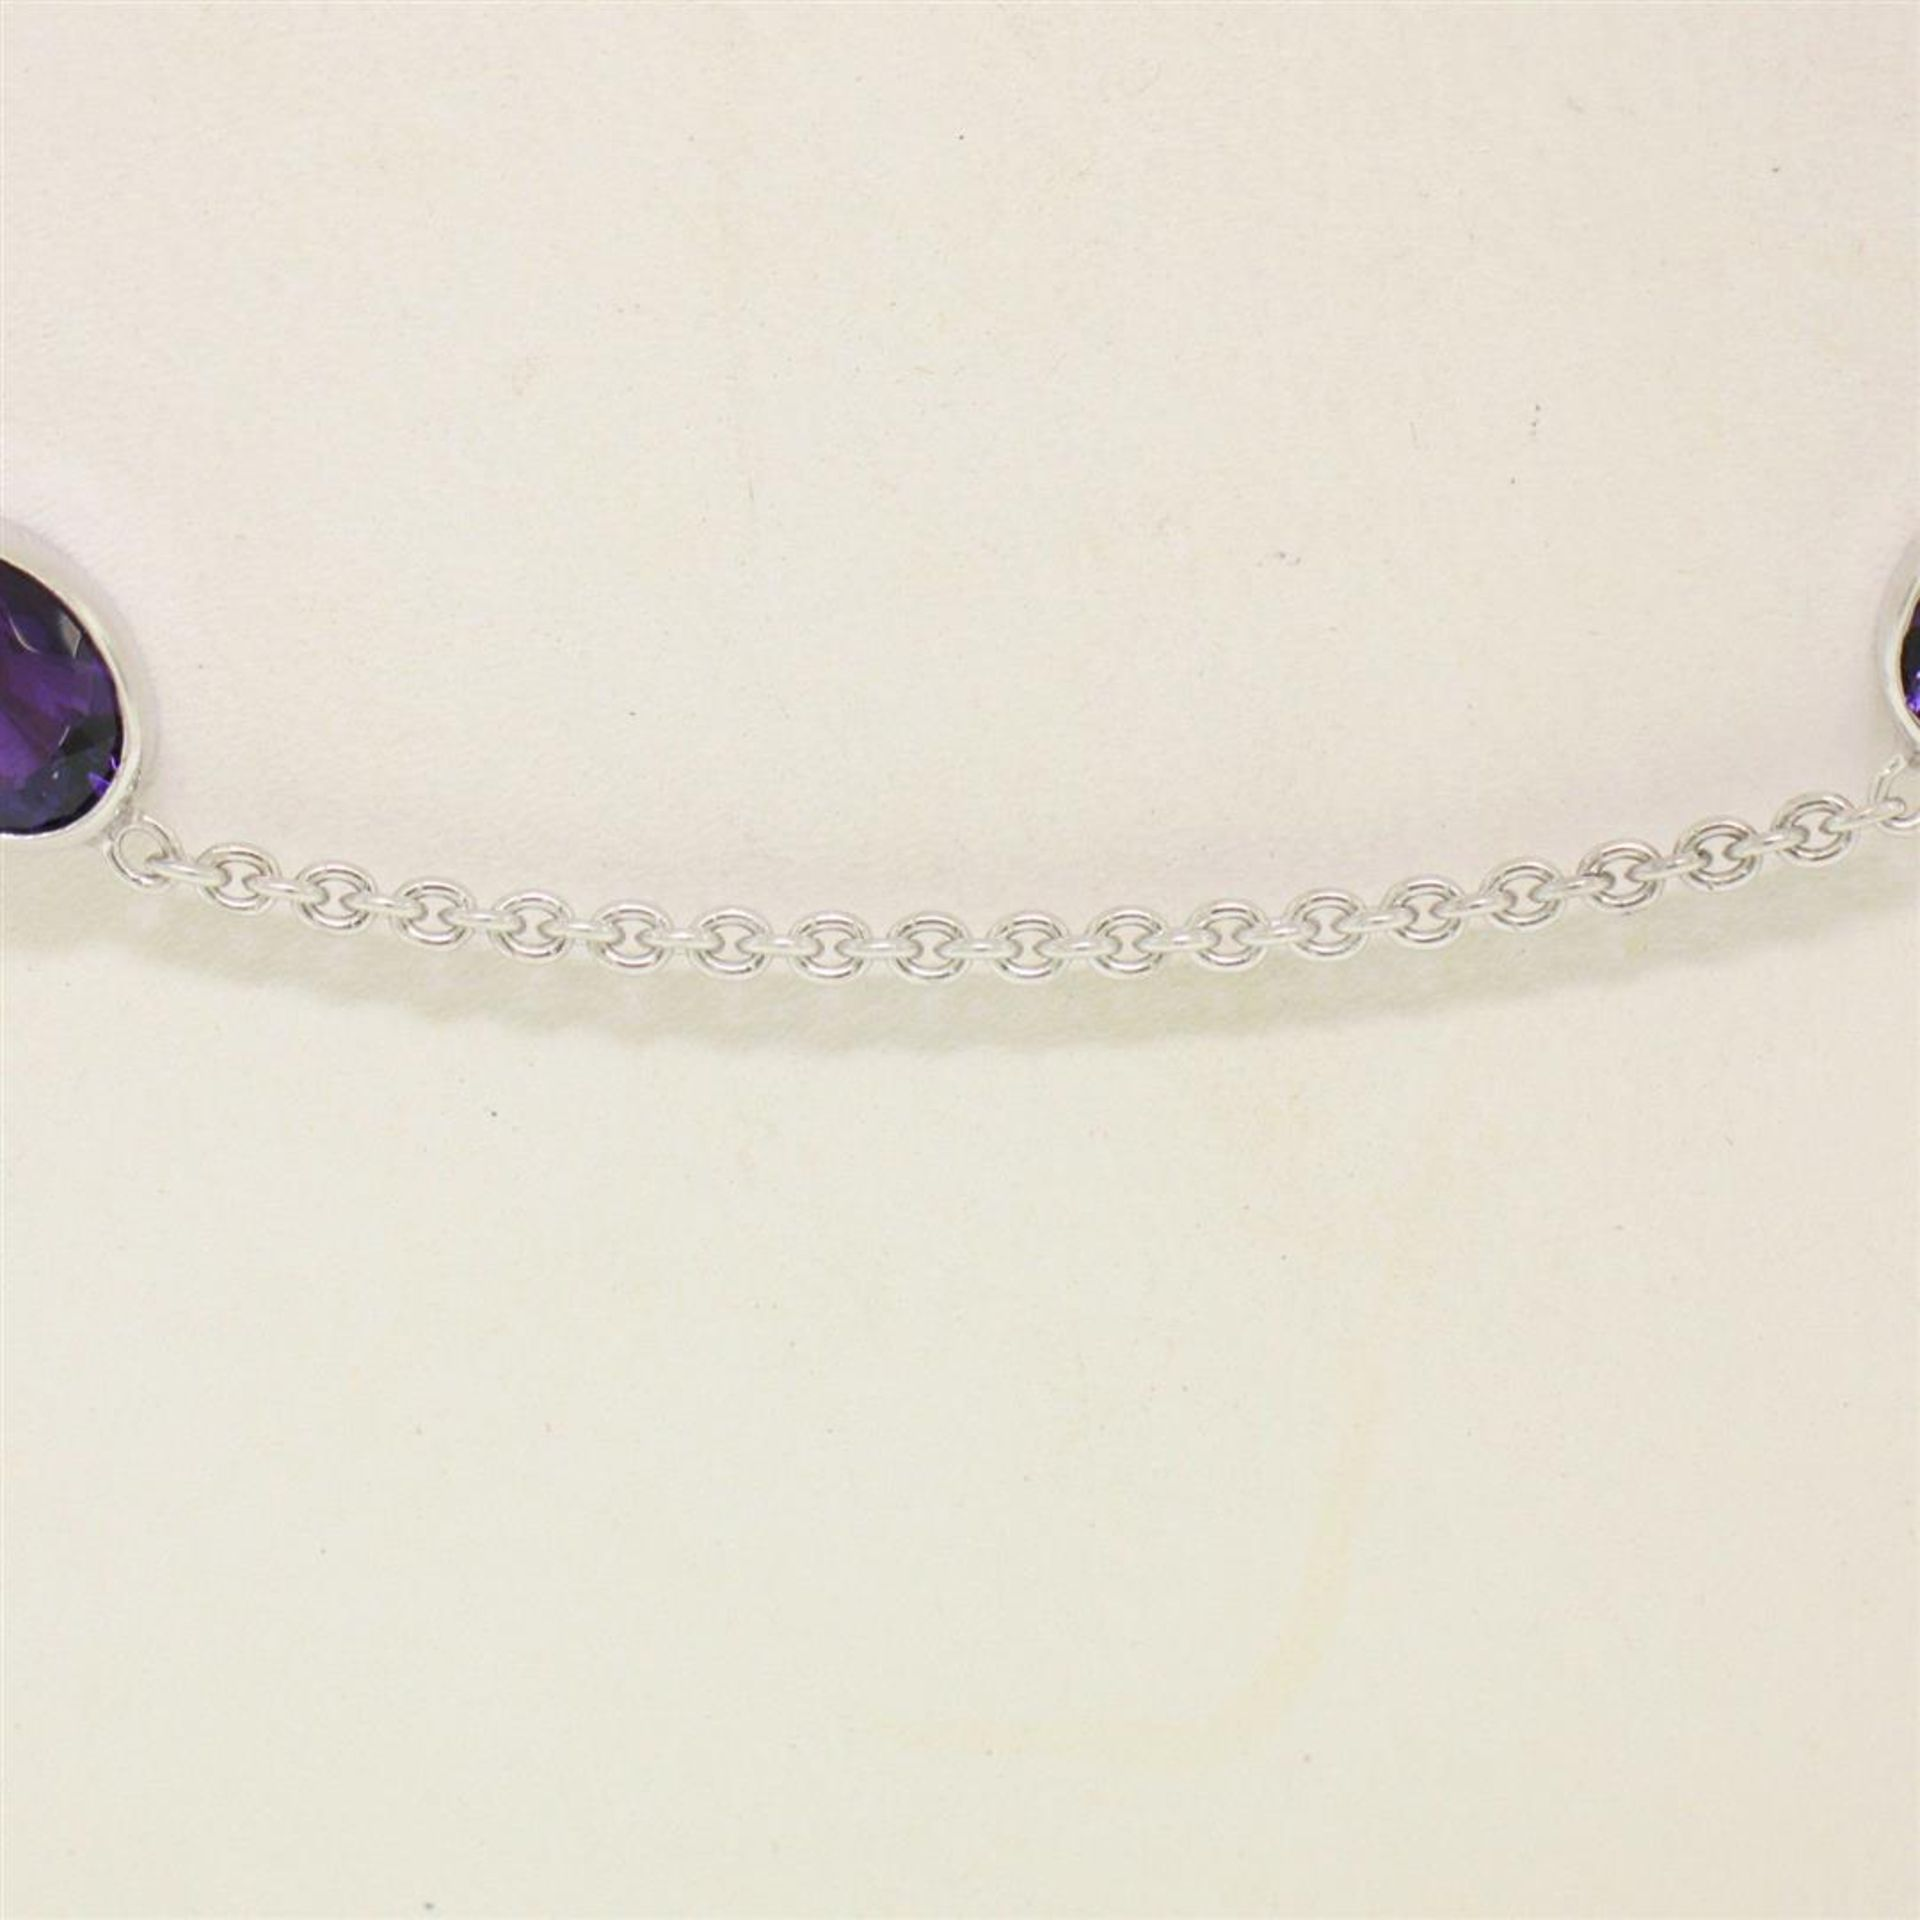 """14k White Gold 8 ctw 8 Station Amethyst by the Yard 20"""" Cable Link Chain Necklac - Image 3 of 7"""